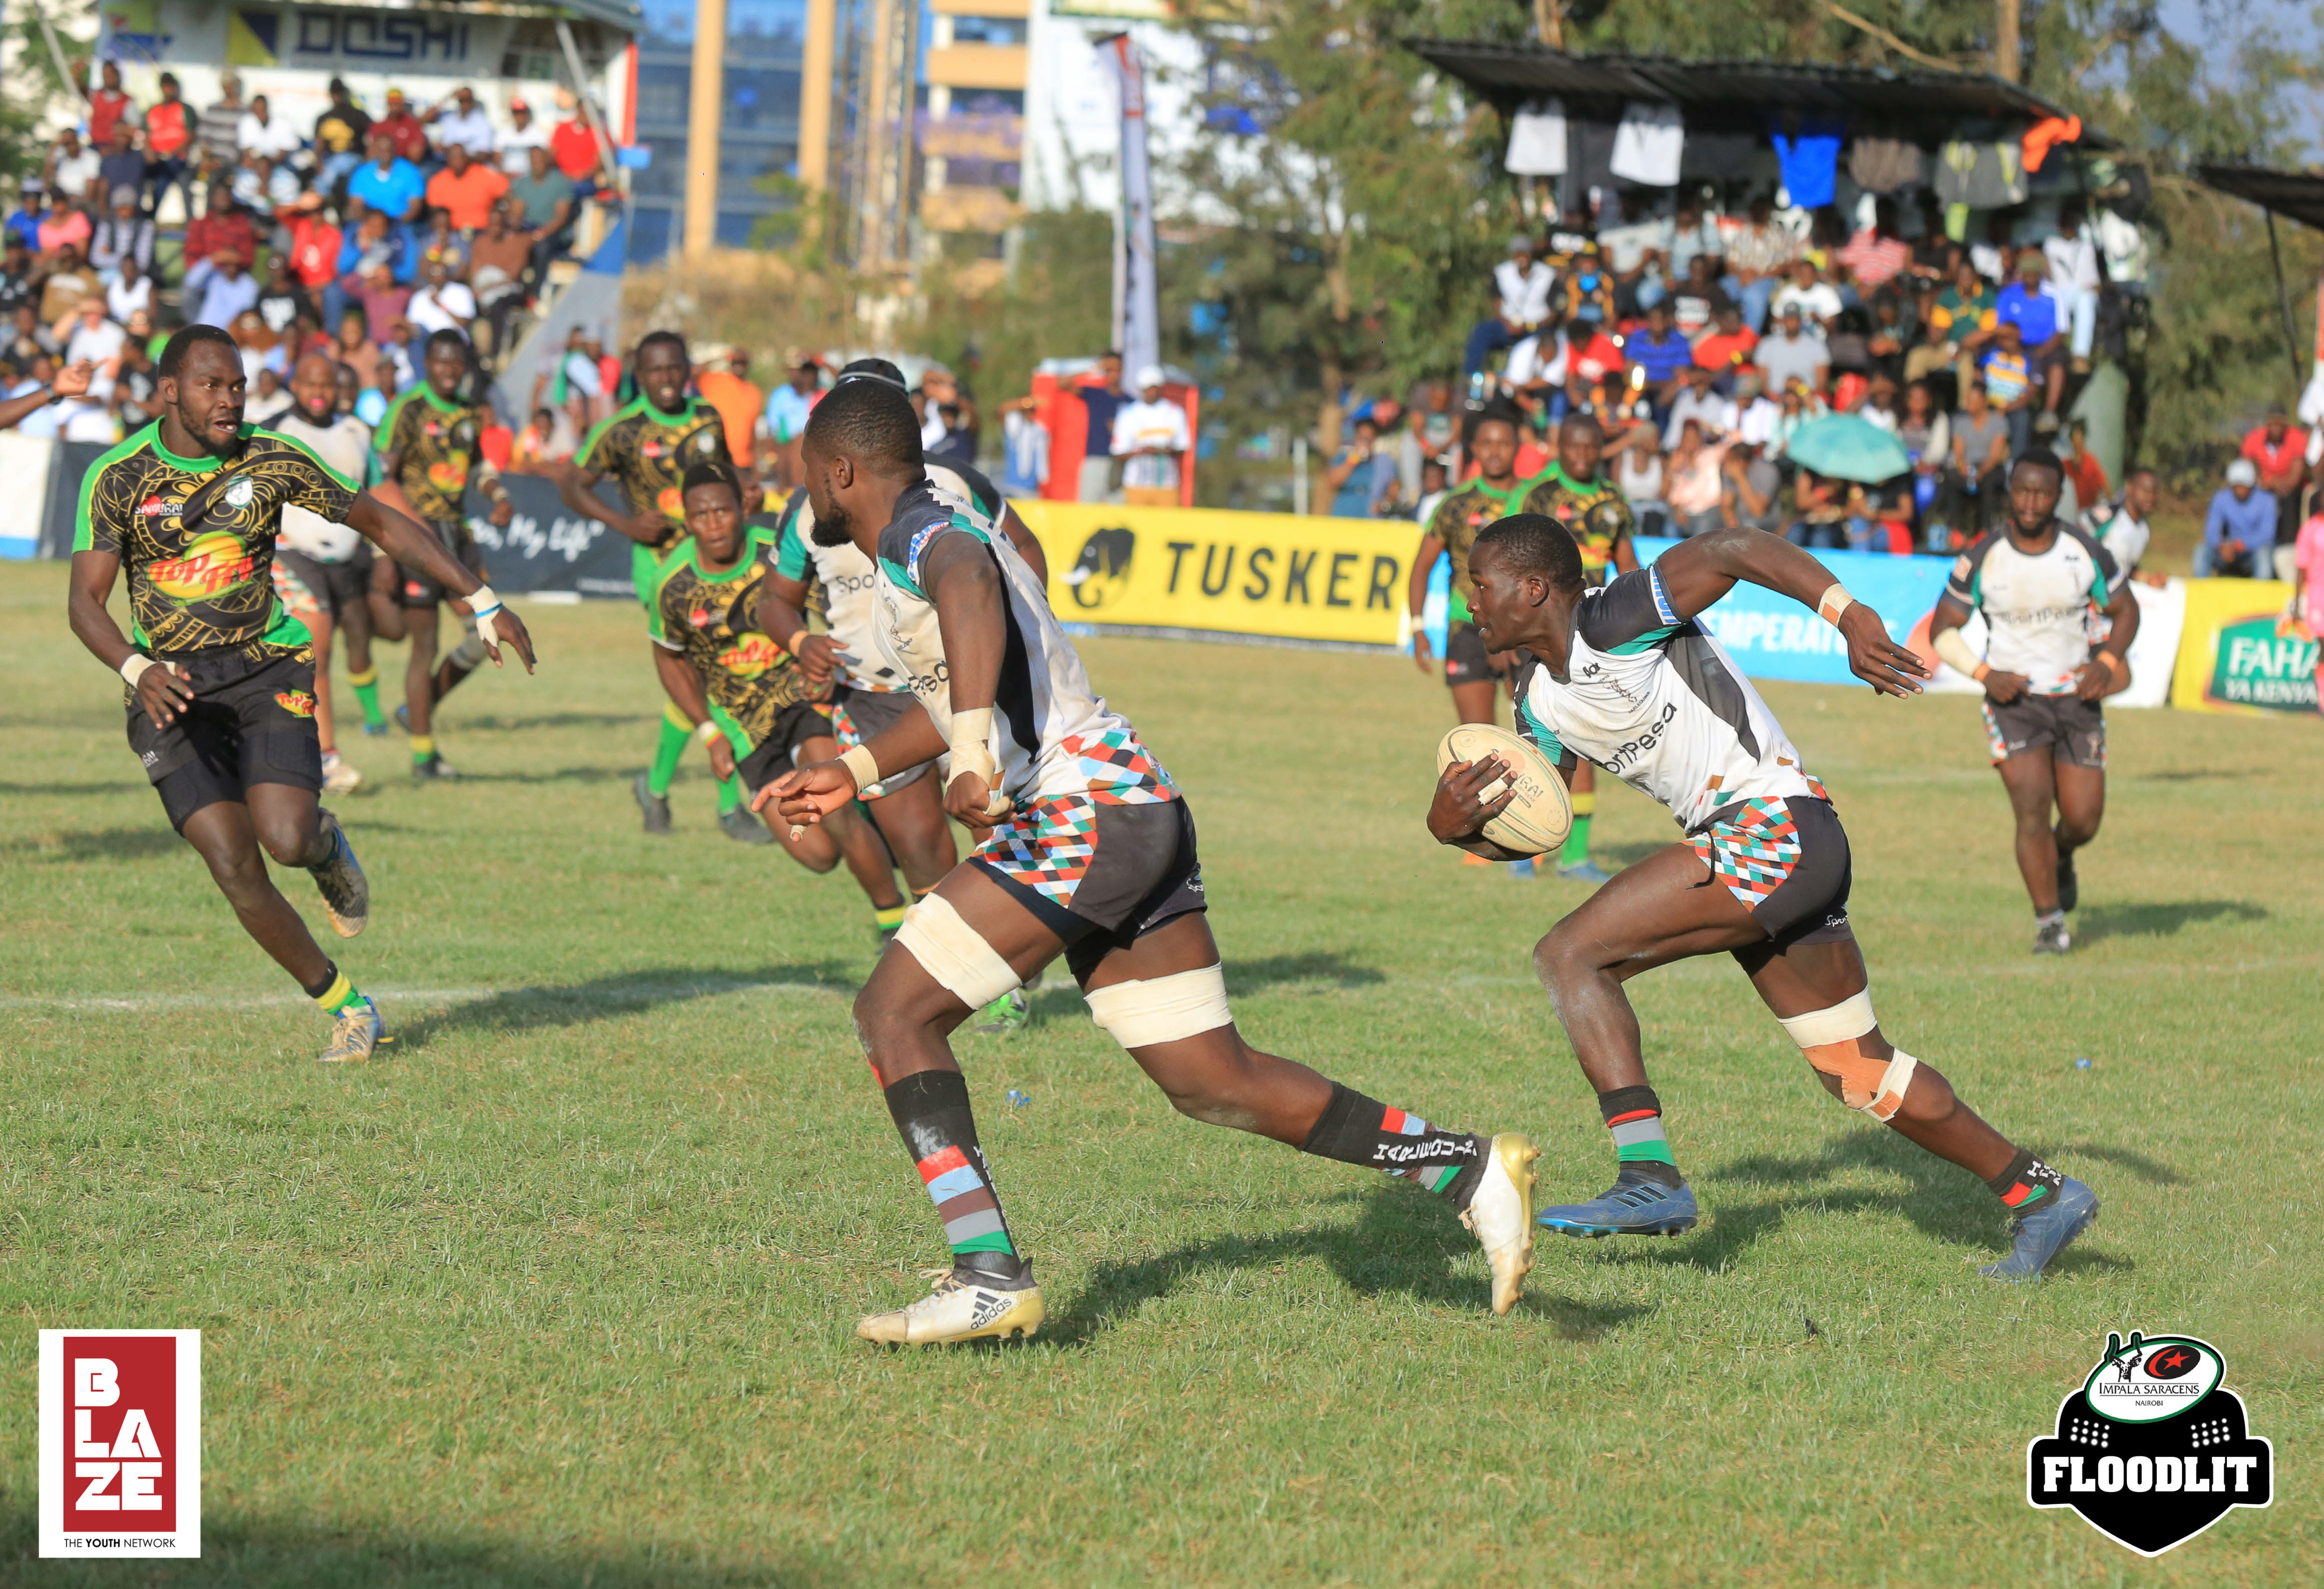 FLOODIES 2018 DAY 2 2